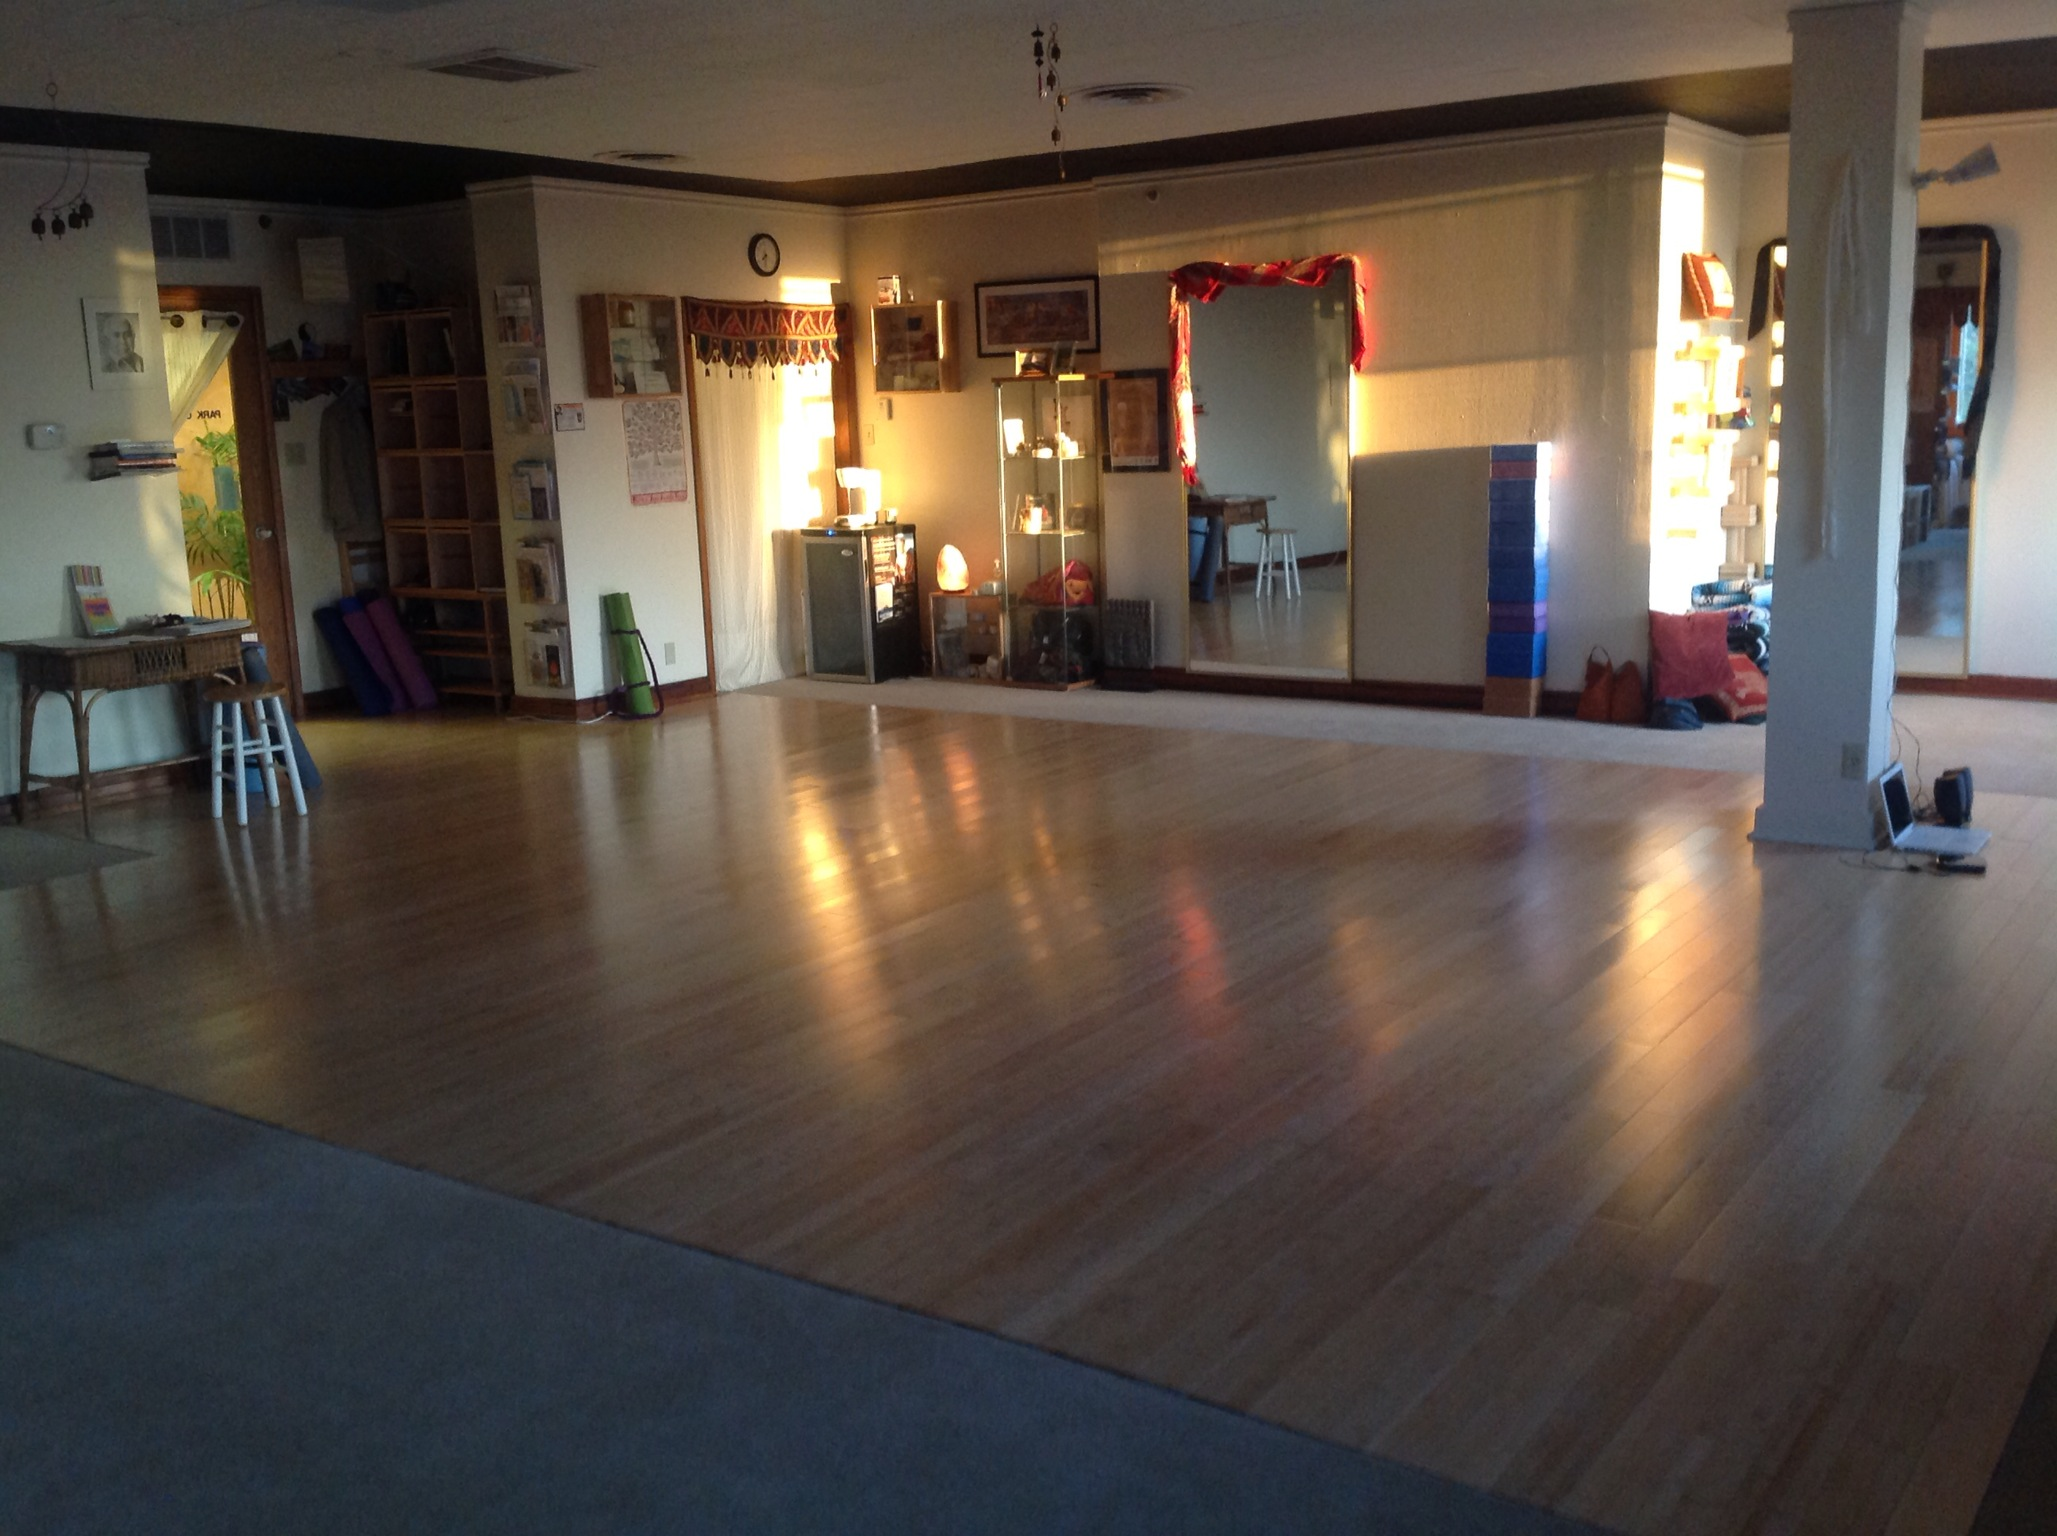 Come fill this space with your beautiful selves.